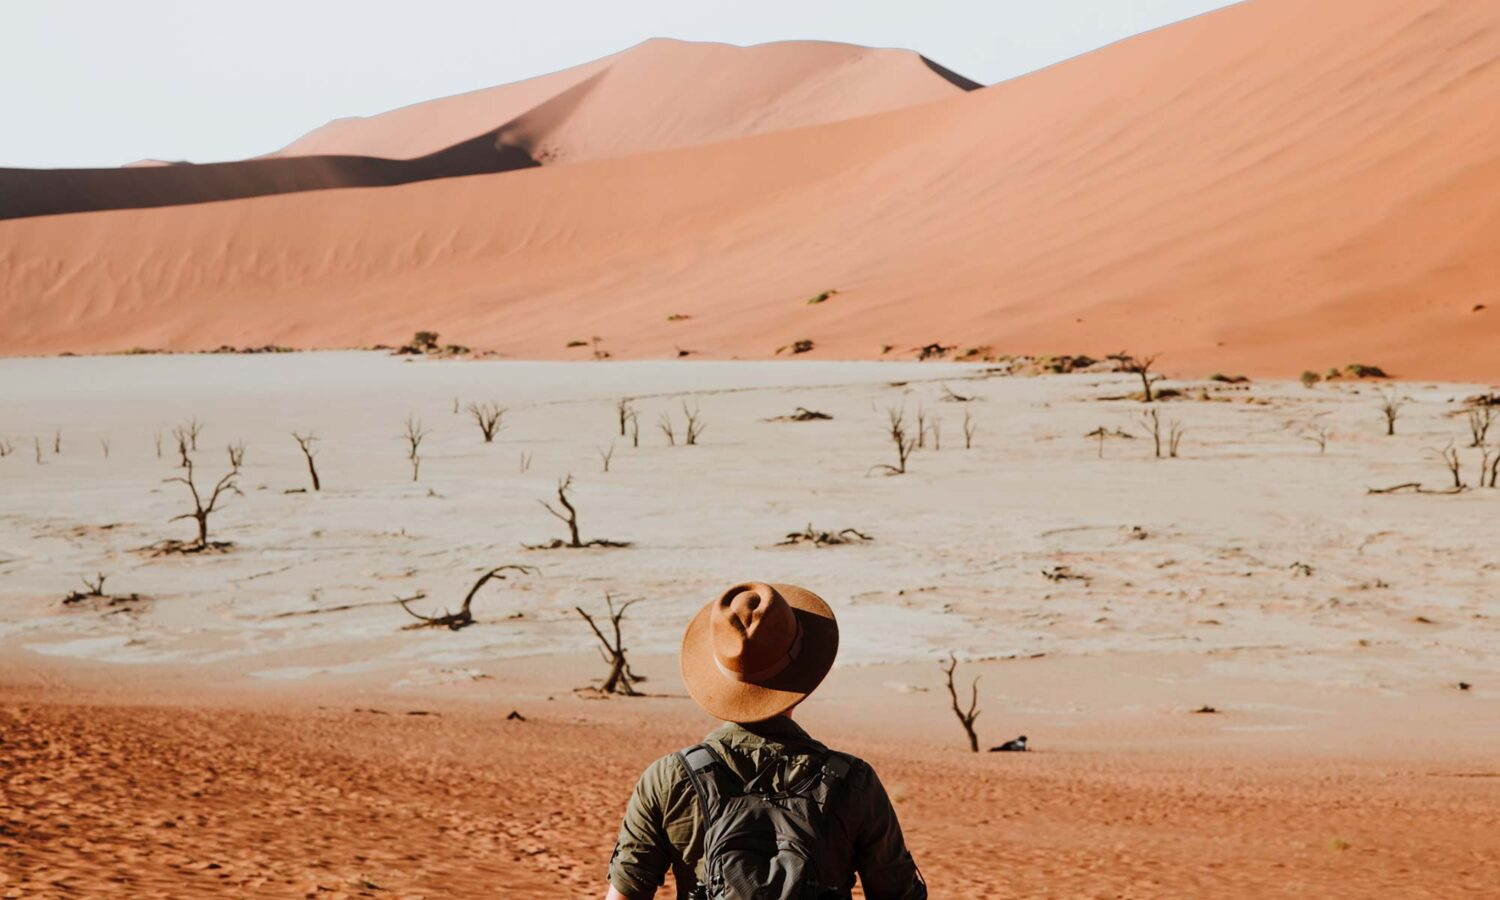 Sossusvlei activities among the sand dunes: exploring Deadvlei